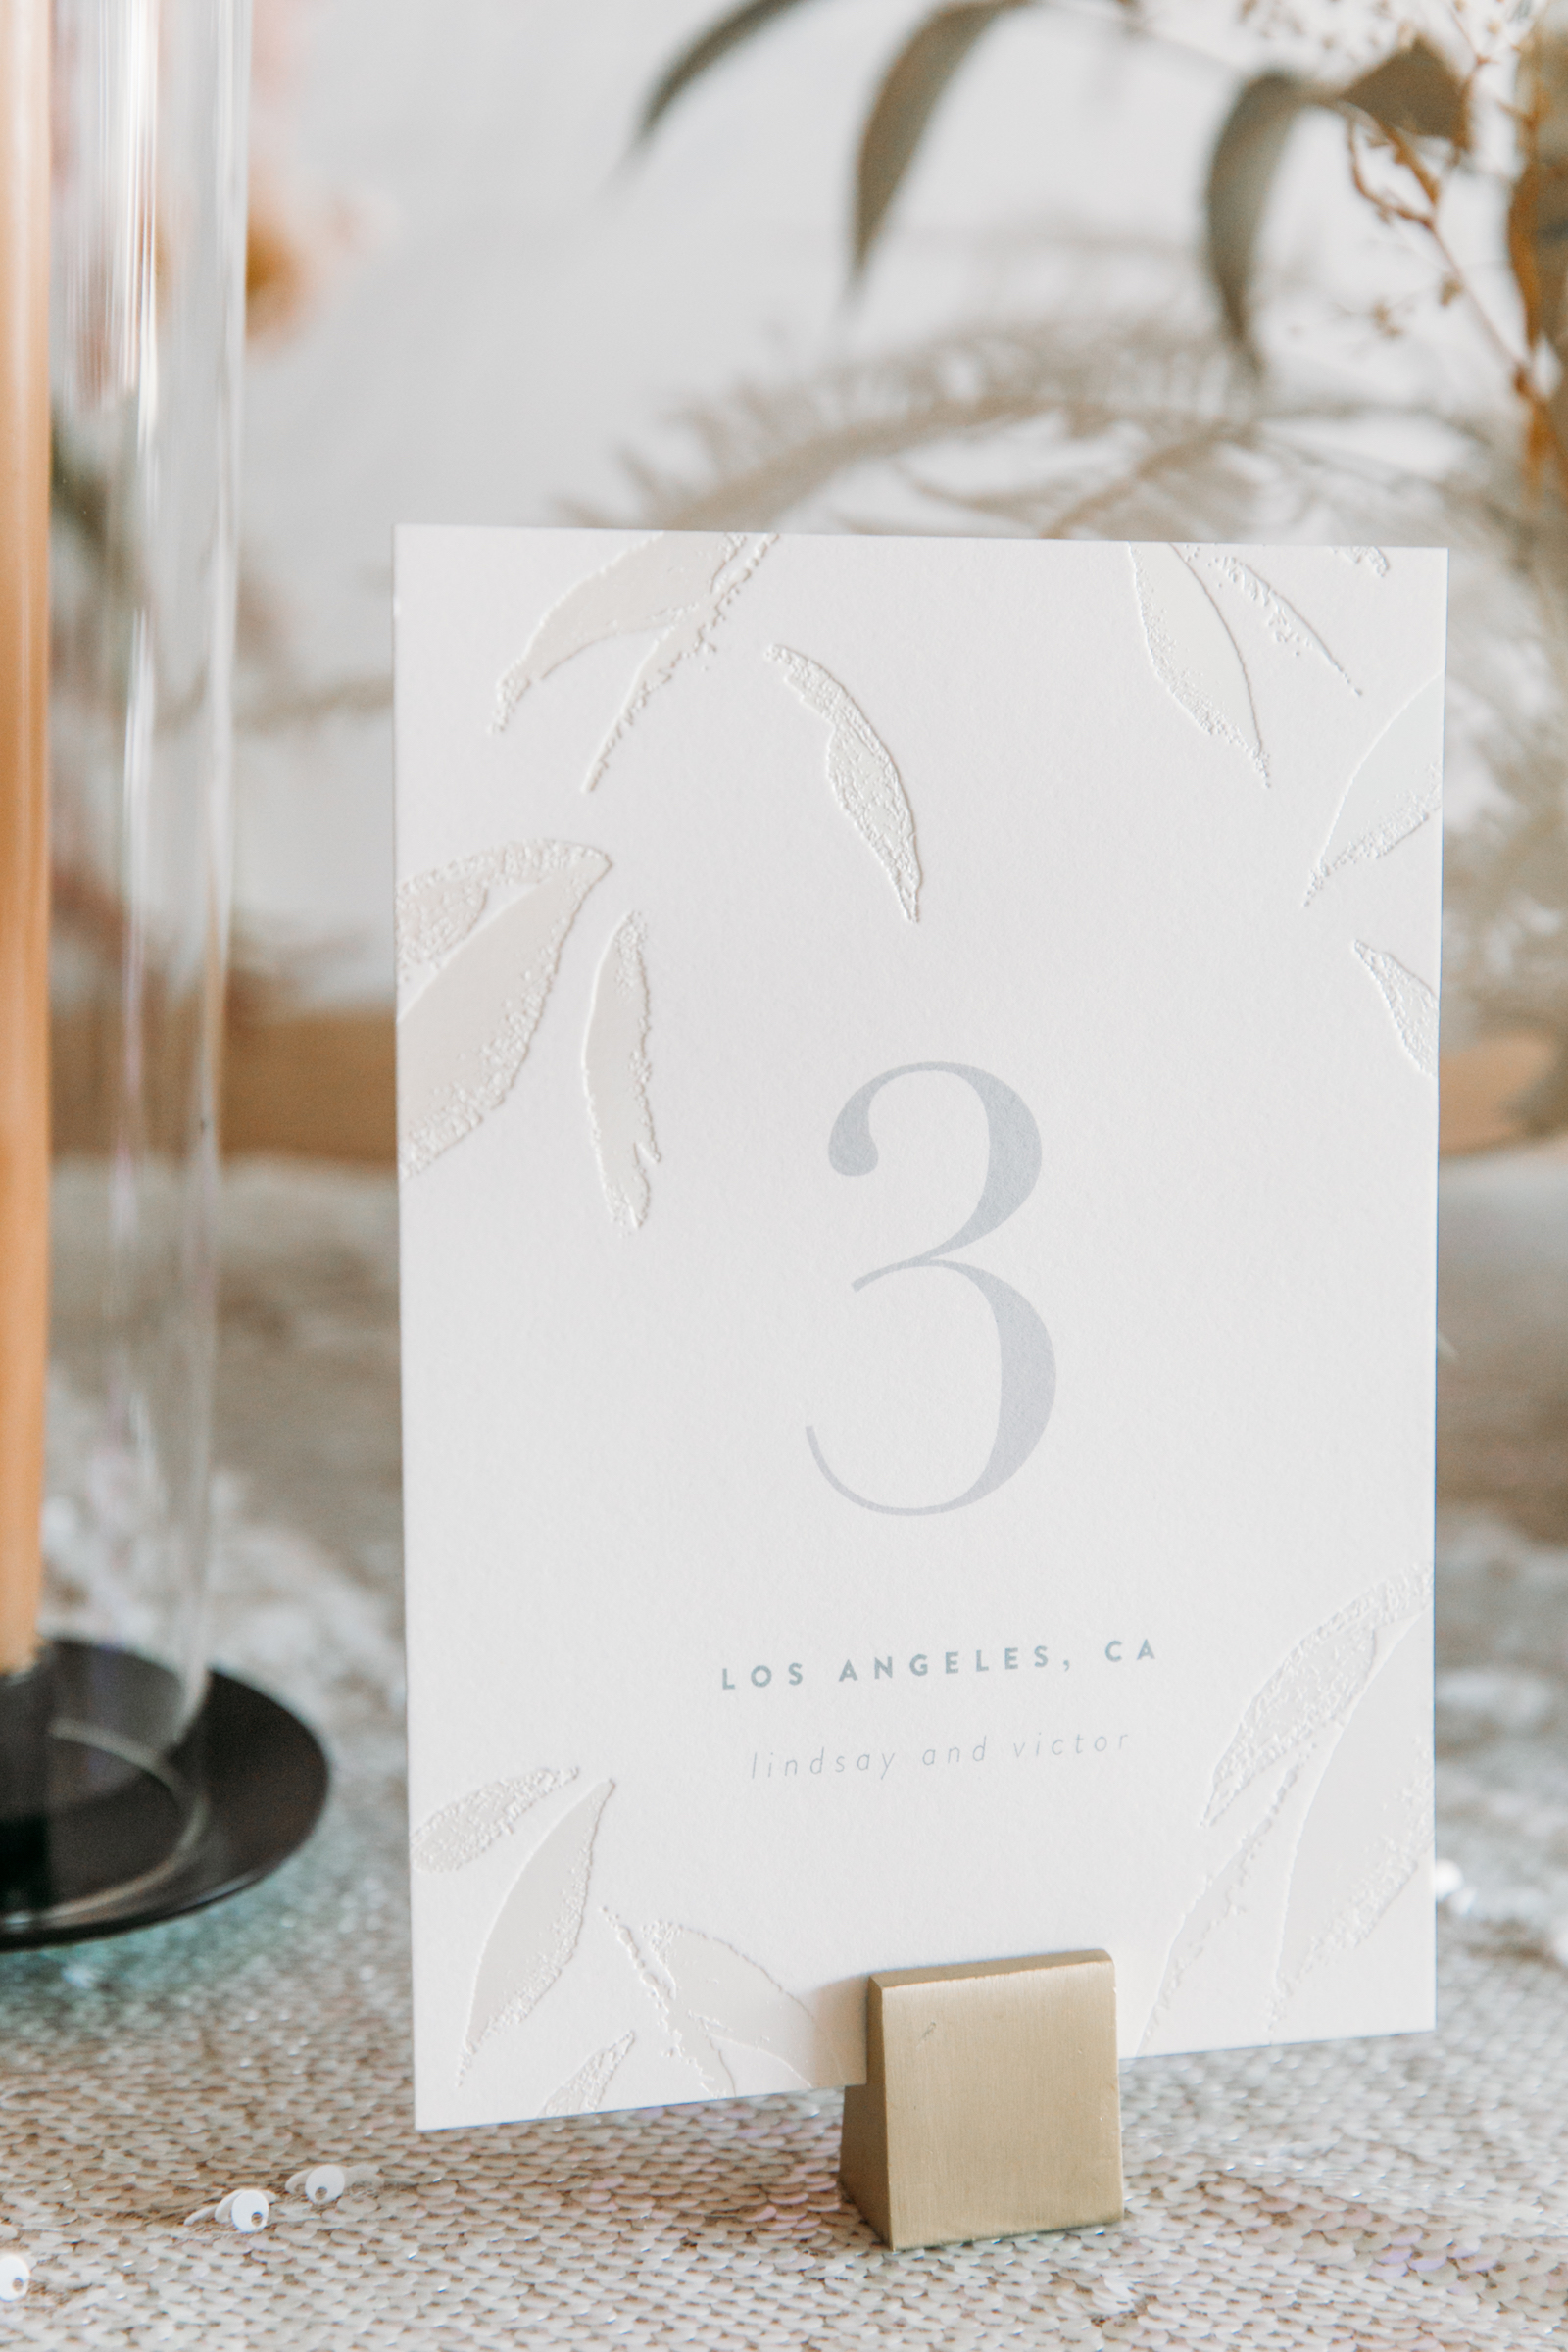 Wedding Table Number Signs from Minted Weddings